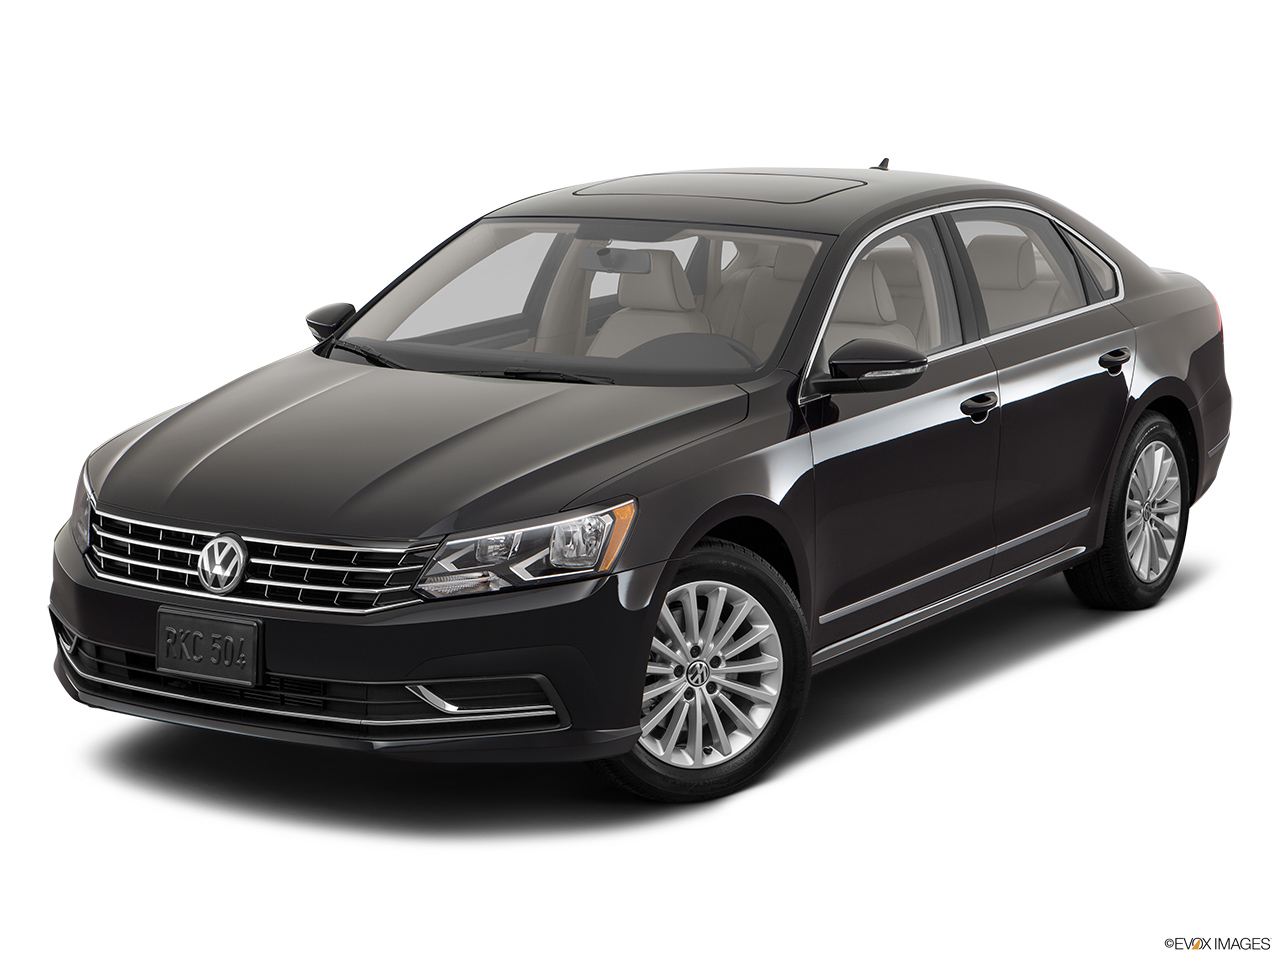 2018 volkswagen passat prices in egypt gulf specs reviews for cairo alexandria and giza. Black Bedroom Furniture Sets. Home Design Ideas